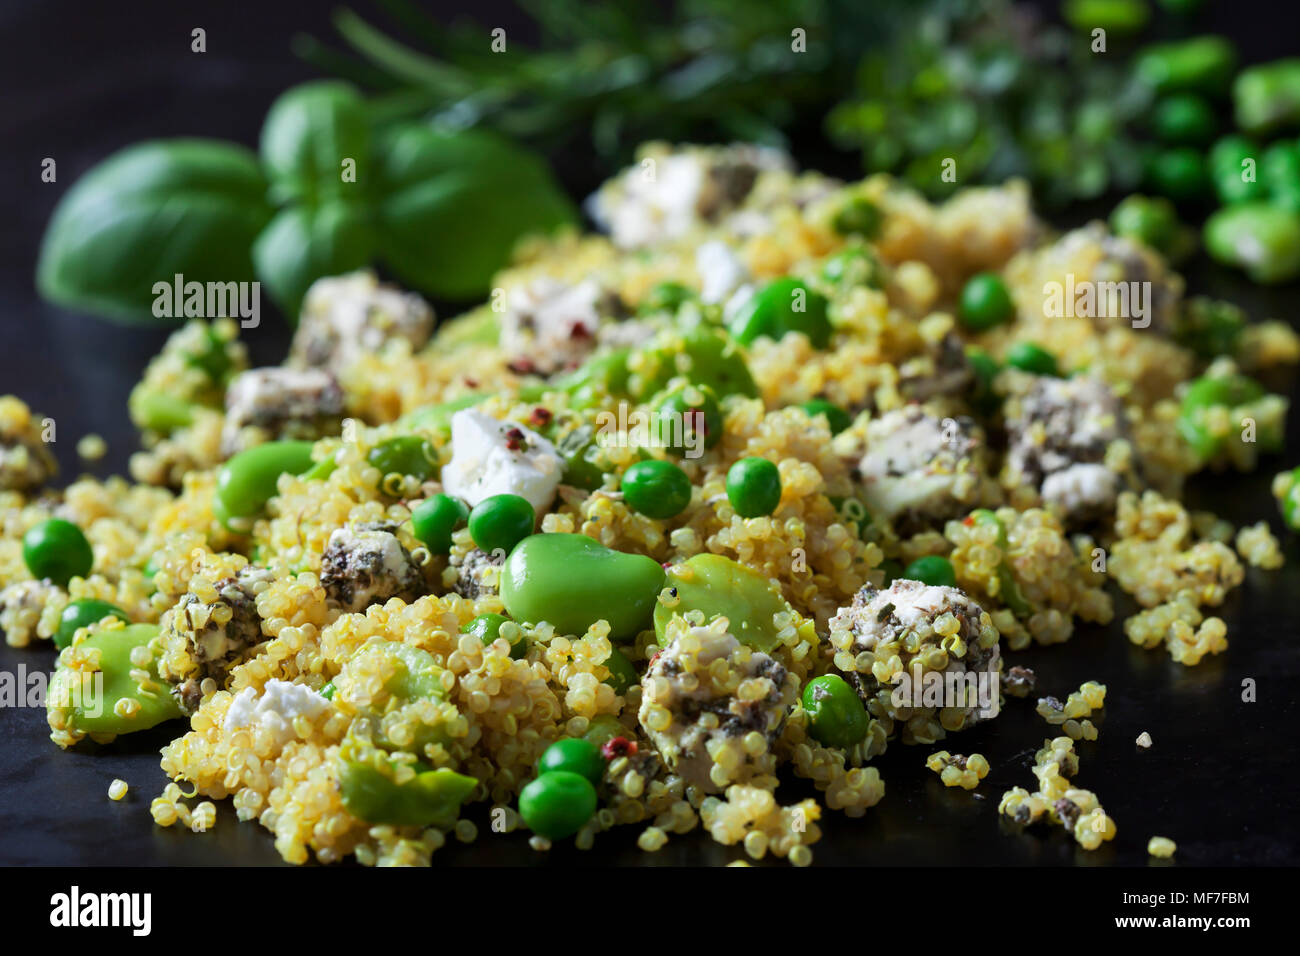 Quinoa salad with broad beans, peas and feta, close-up - Stock Image